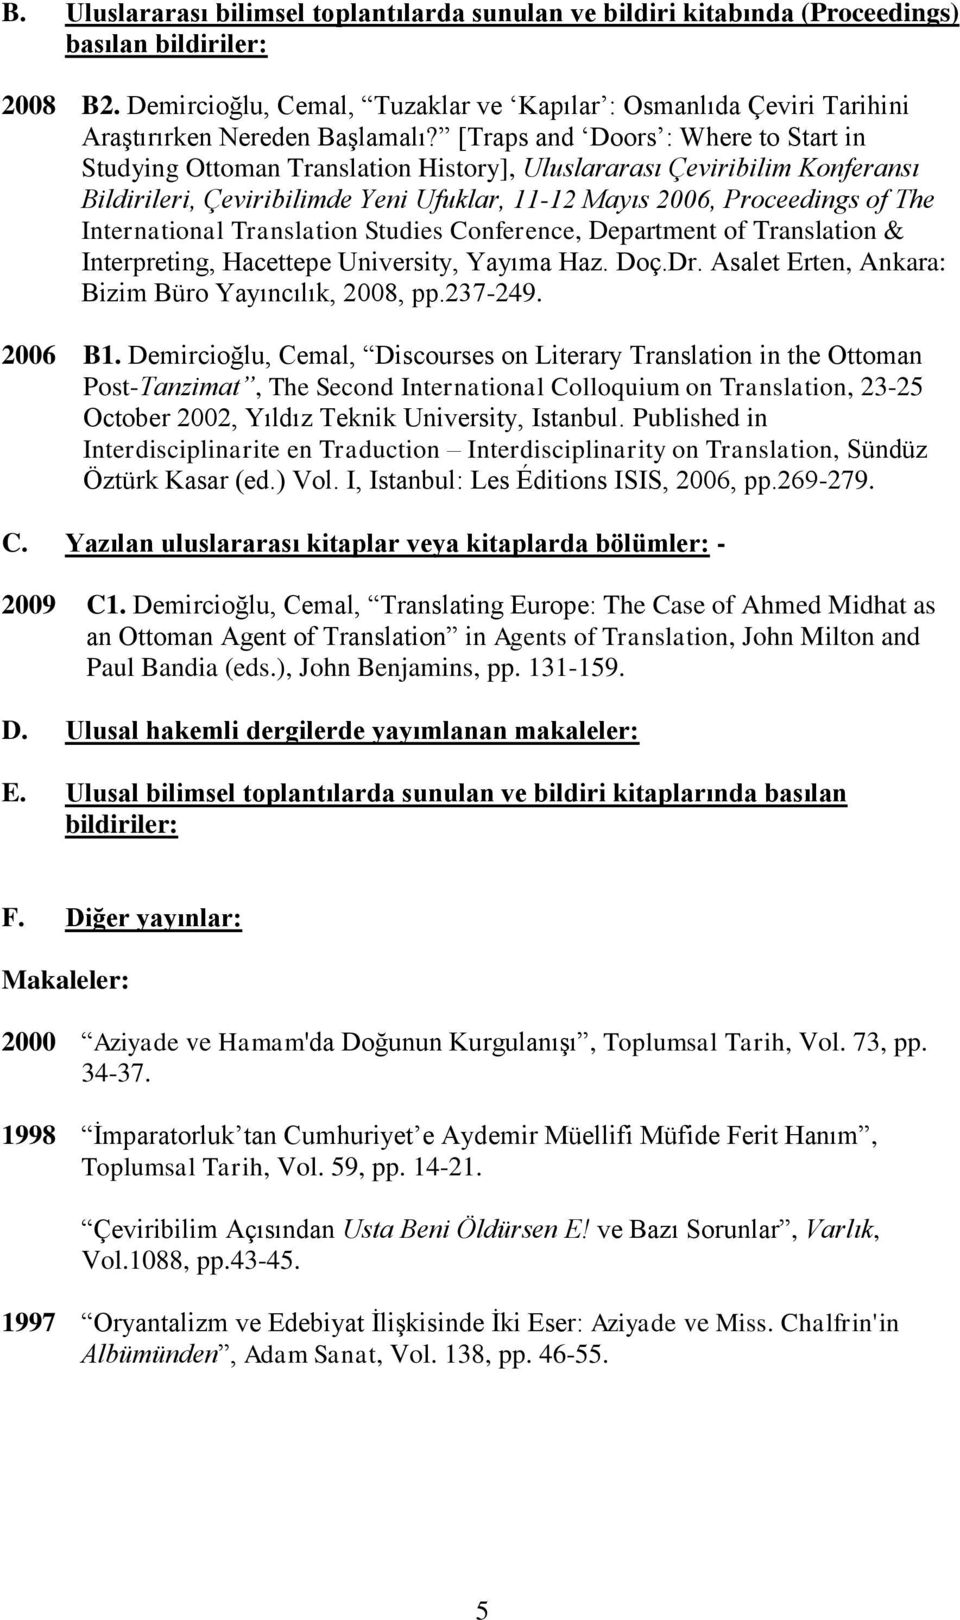 [Traps and Doors : Where to Start in Studying Ottoman Translation History], Uluslararası Çeviribilim Konferansı Bildirileri, Çeviribilimde Yeni Ufuklar, 11-12 Mayıs 2006, Proceedings of The